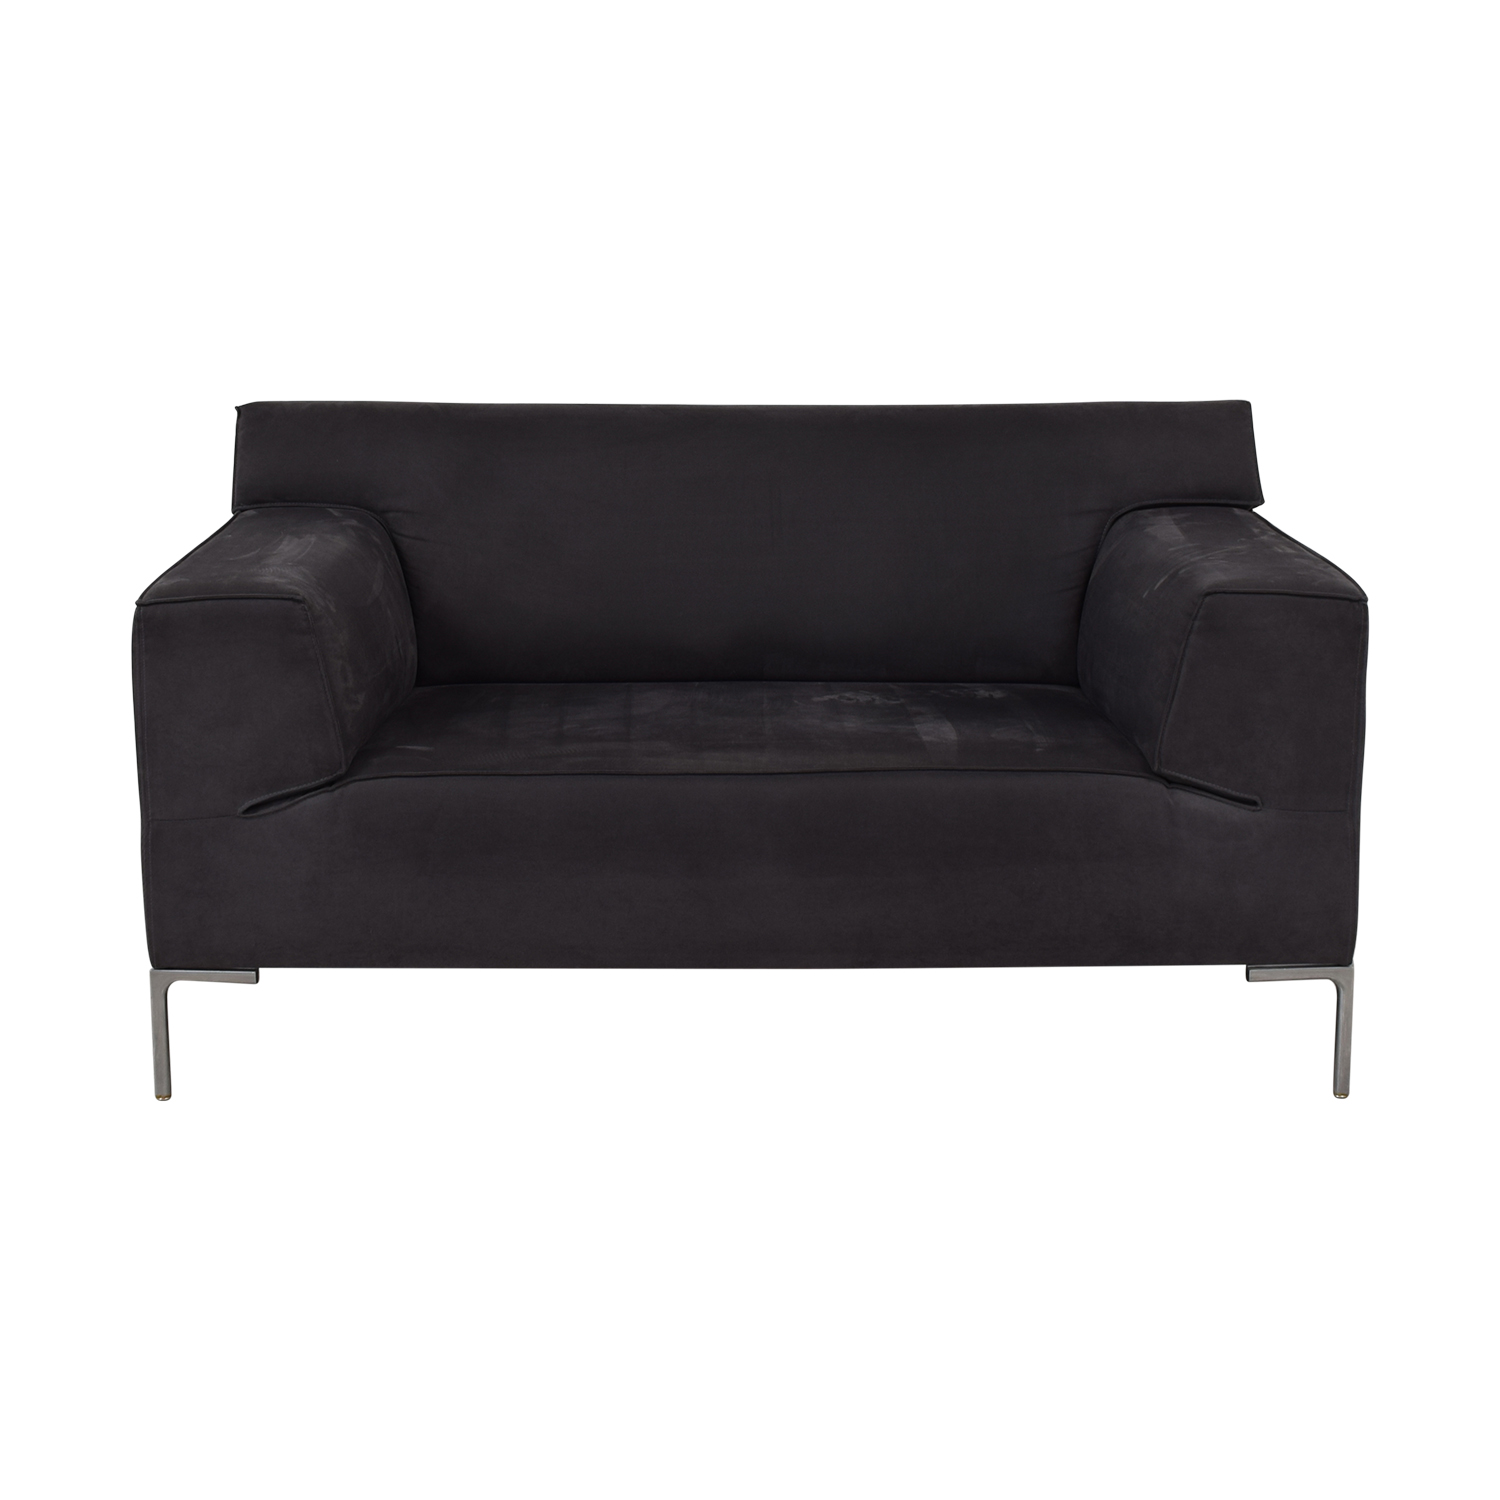 Design On Stock USA Bloq Loveseat second hand